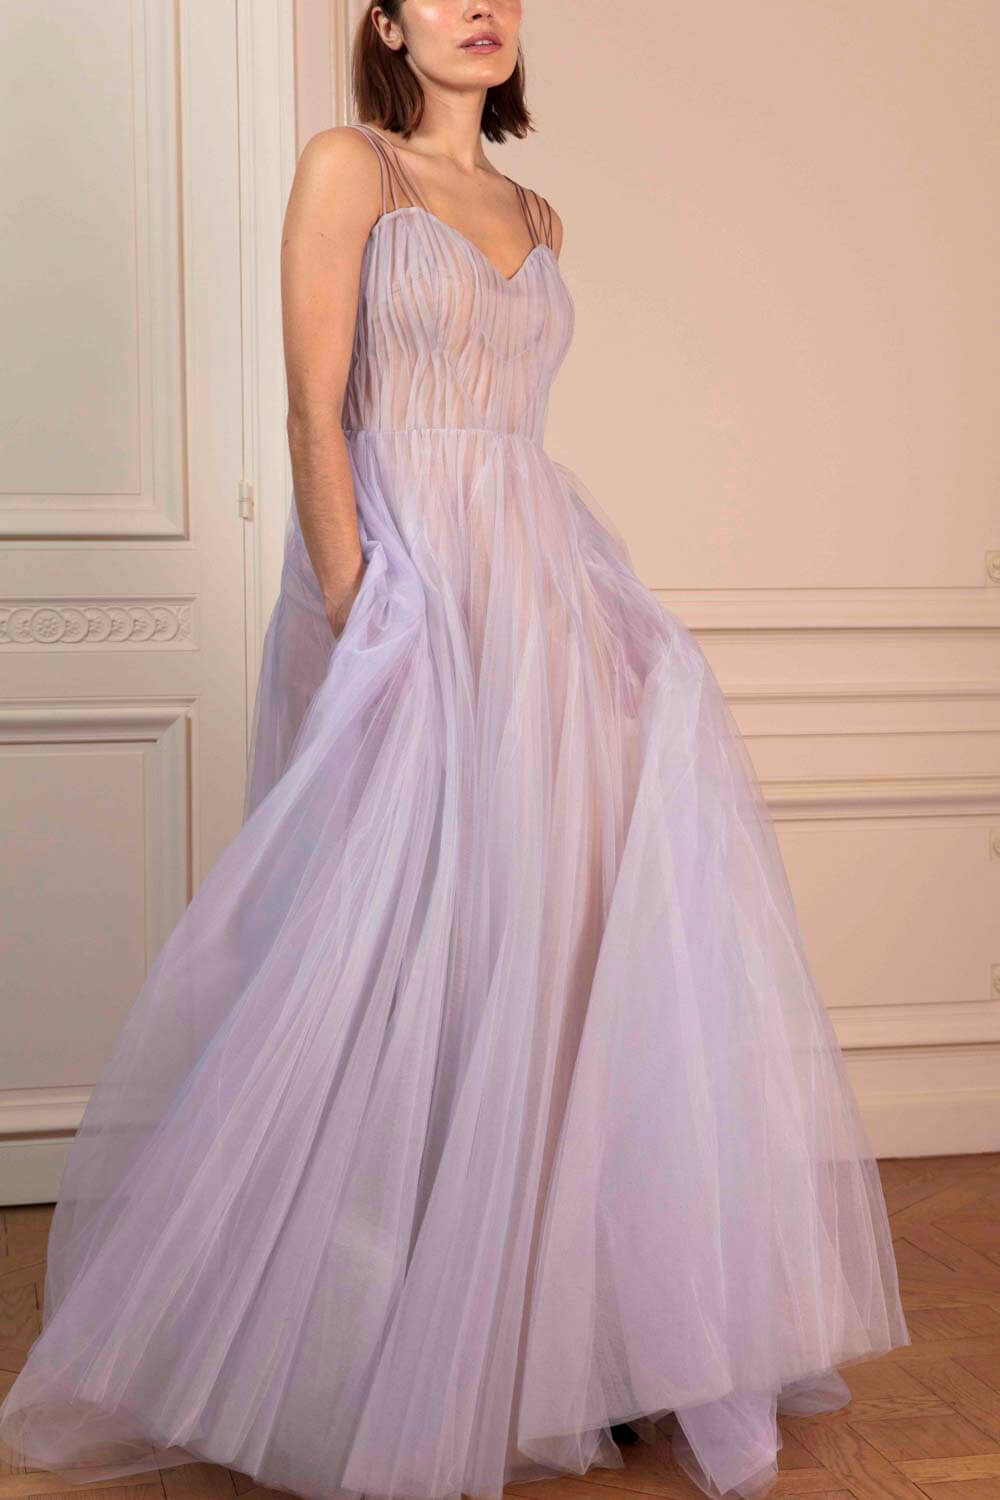 Lavender gown in layered tulle with sweetheart neckline, ribbon straps and train